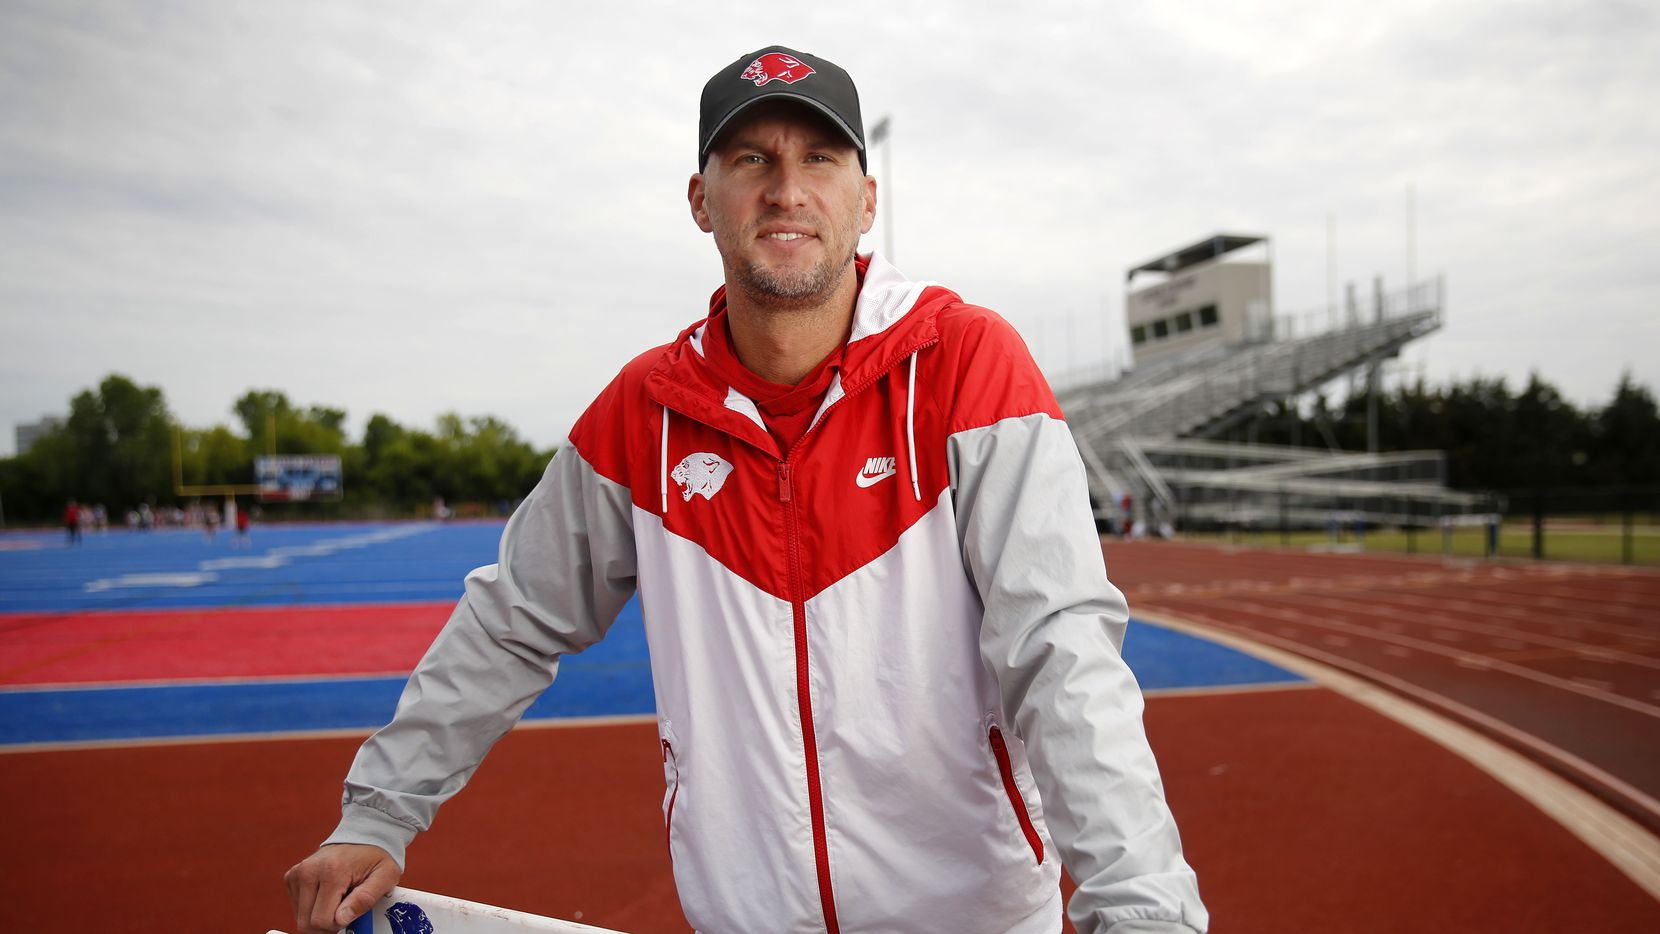 Parish Episcopal head track coach Jeremy Wariner poses for a photo at the schools stadium in Dallas, Wednesday, April 21, 2021. The former Arlington Lamar and Baylor star who won three Olympic gold medals — one in the 400 meters and two in the 4x400 relay — took over the program after retiring from competition.